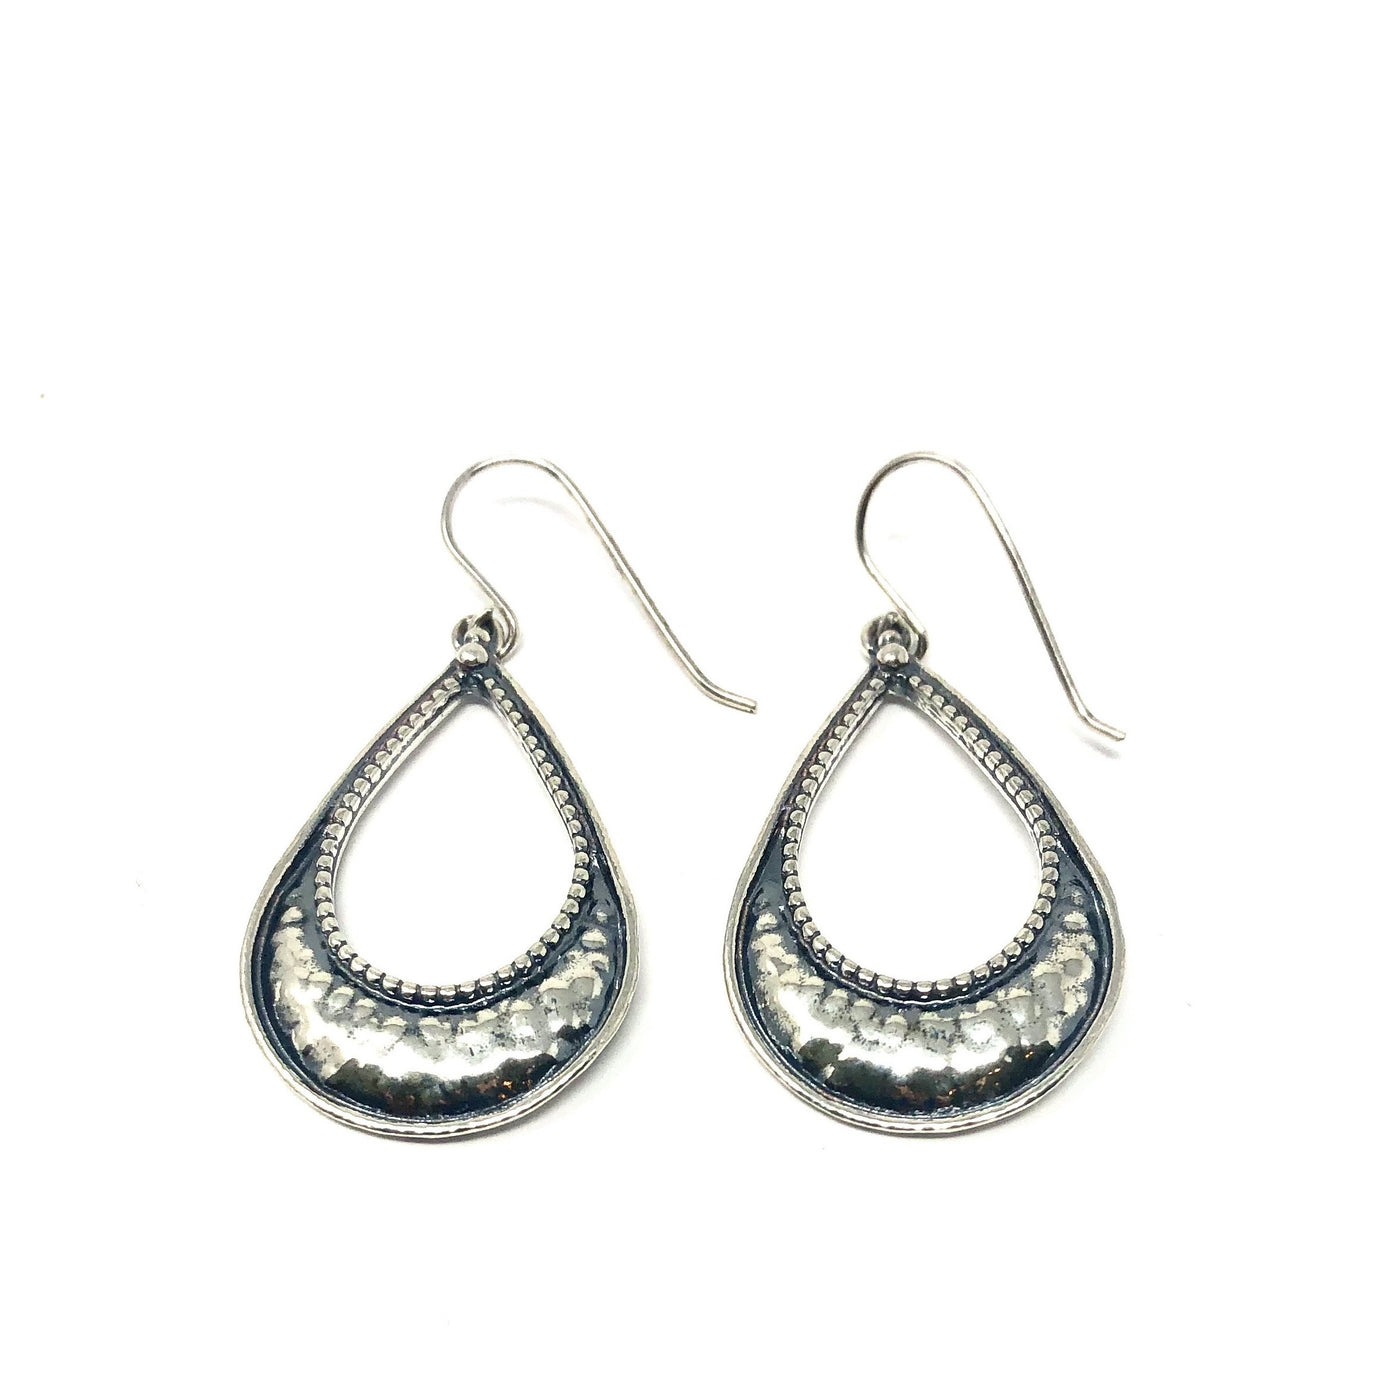 DSB E02917SI HAMMERED TEAR DROP EARRINGS